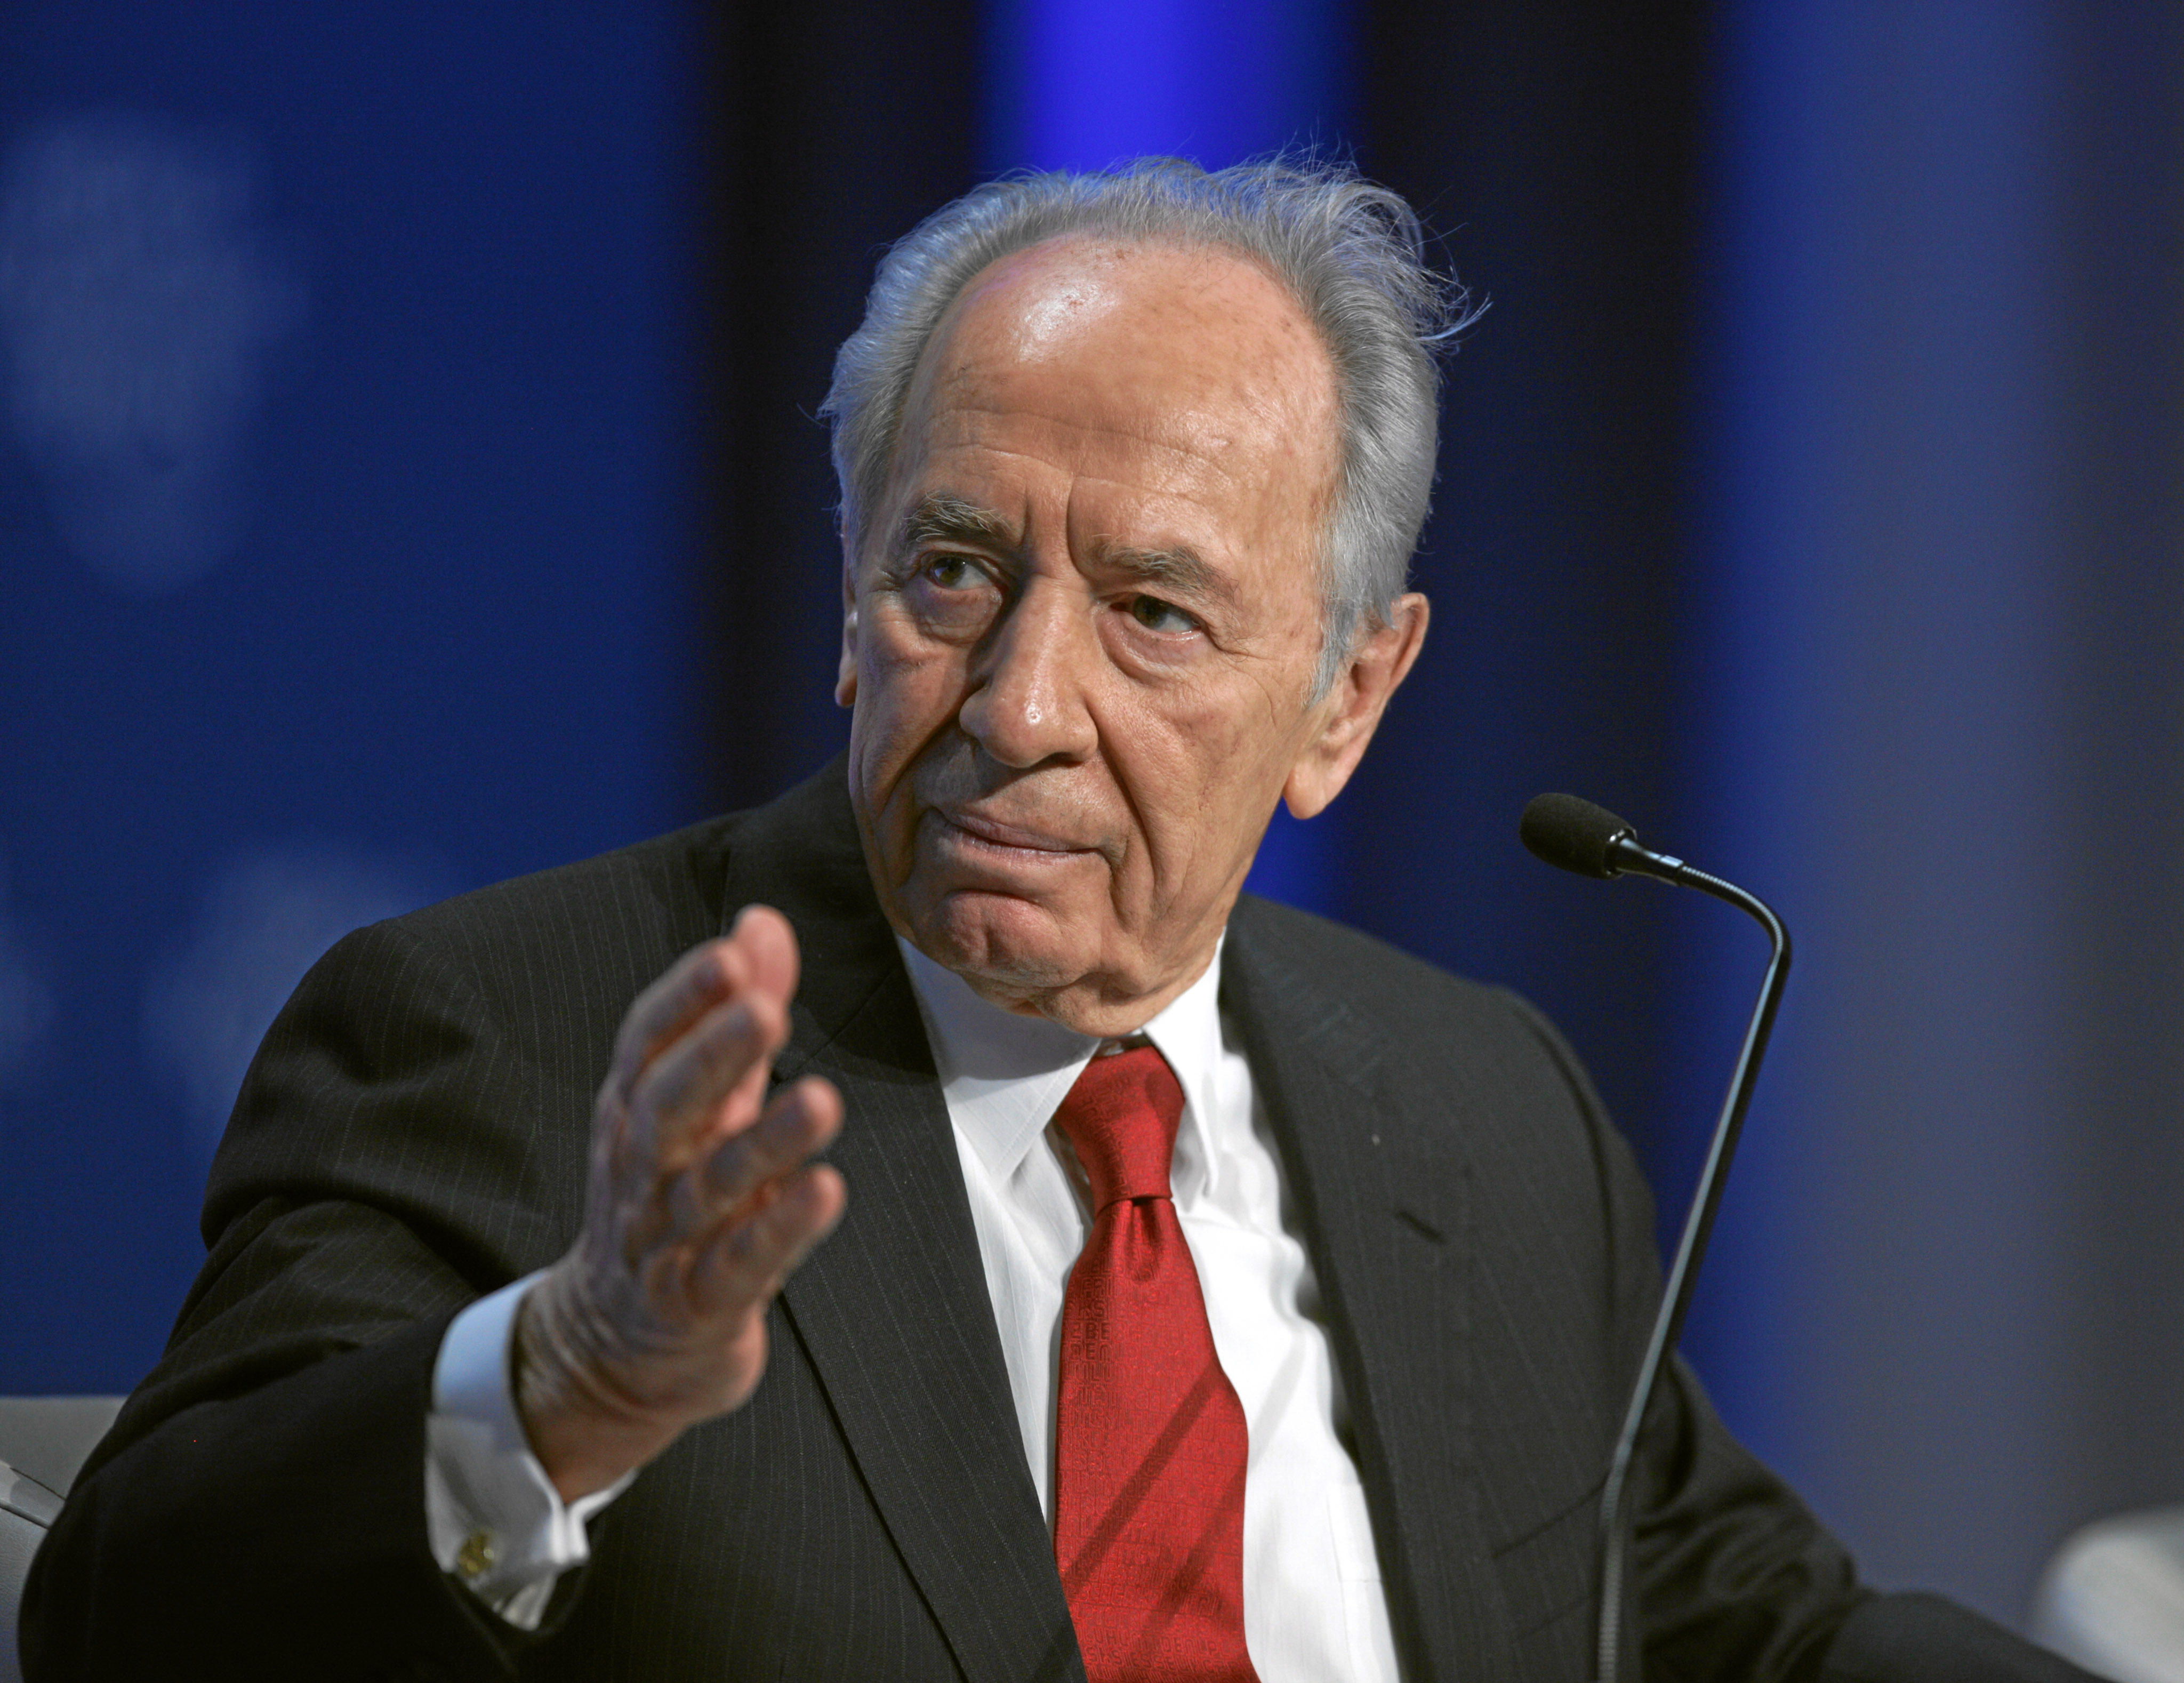 Shimon Peres at wRanter.com